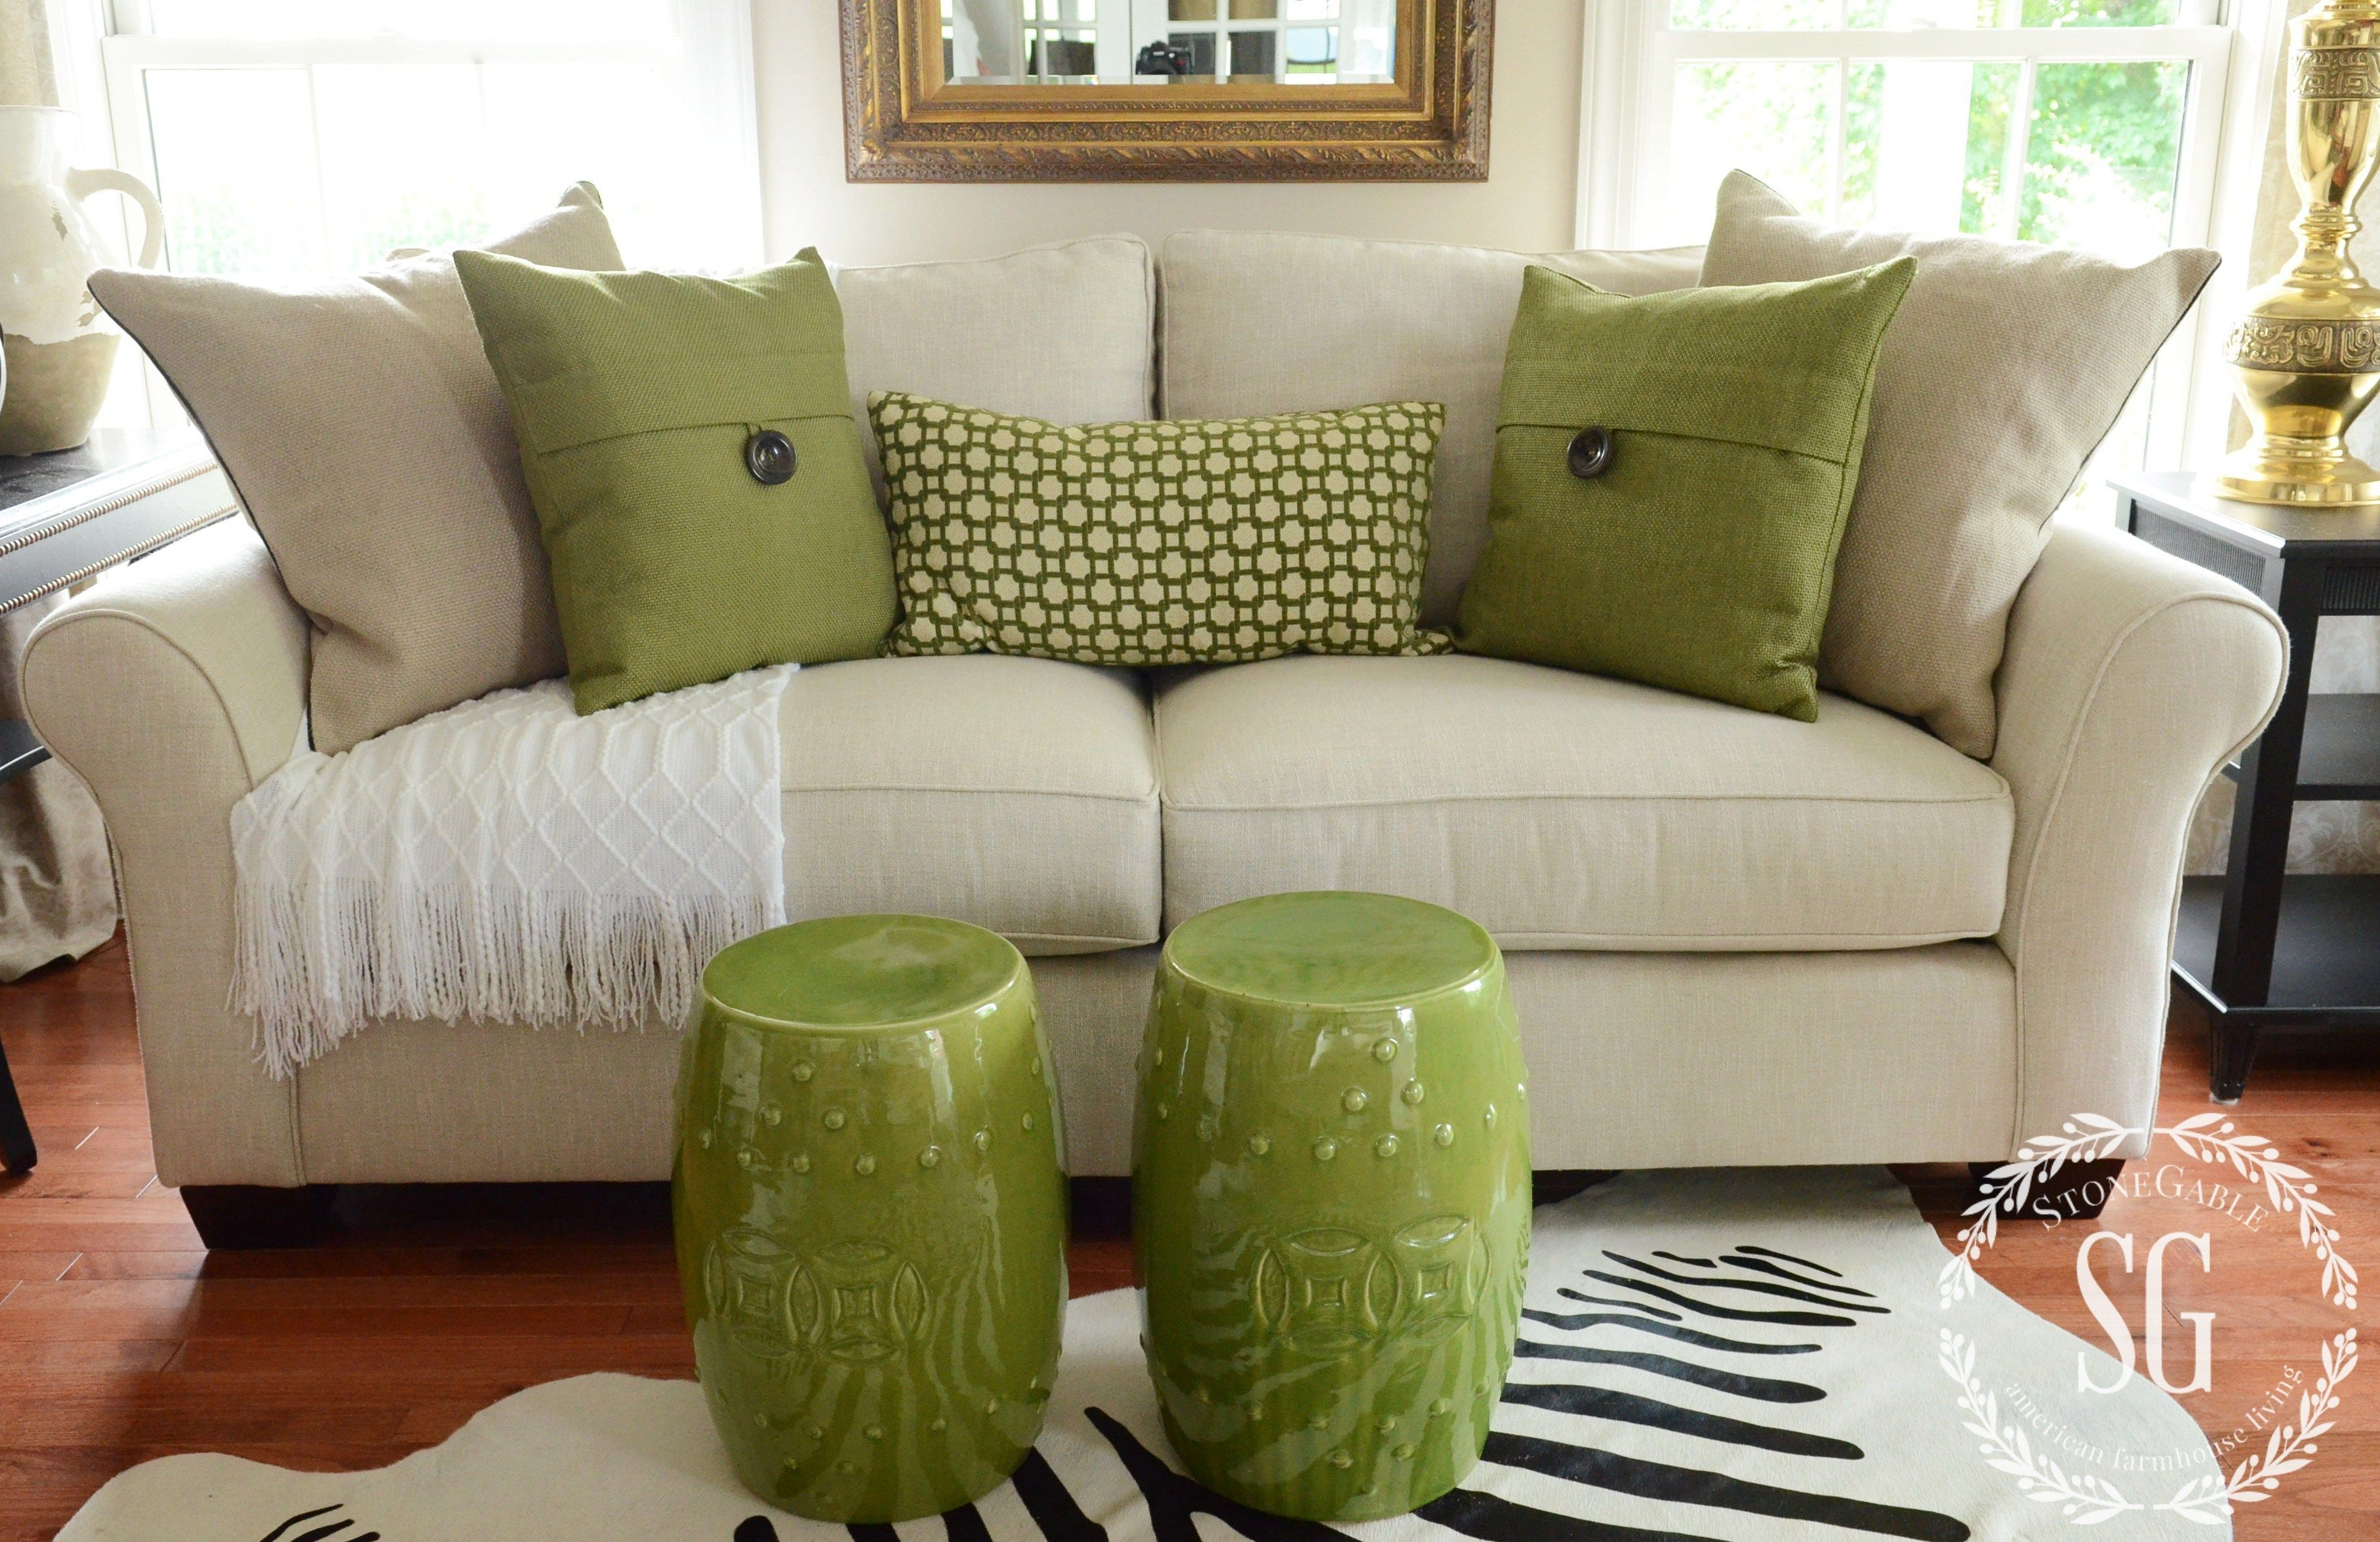 5 No Fail Tips For Arranging Pillows Couch Throw Pillows Living